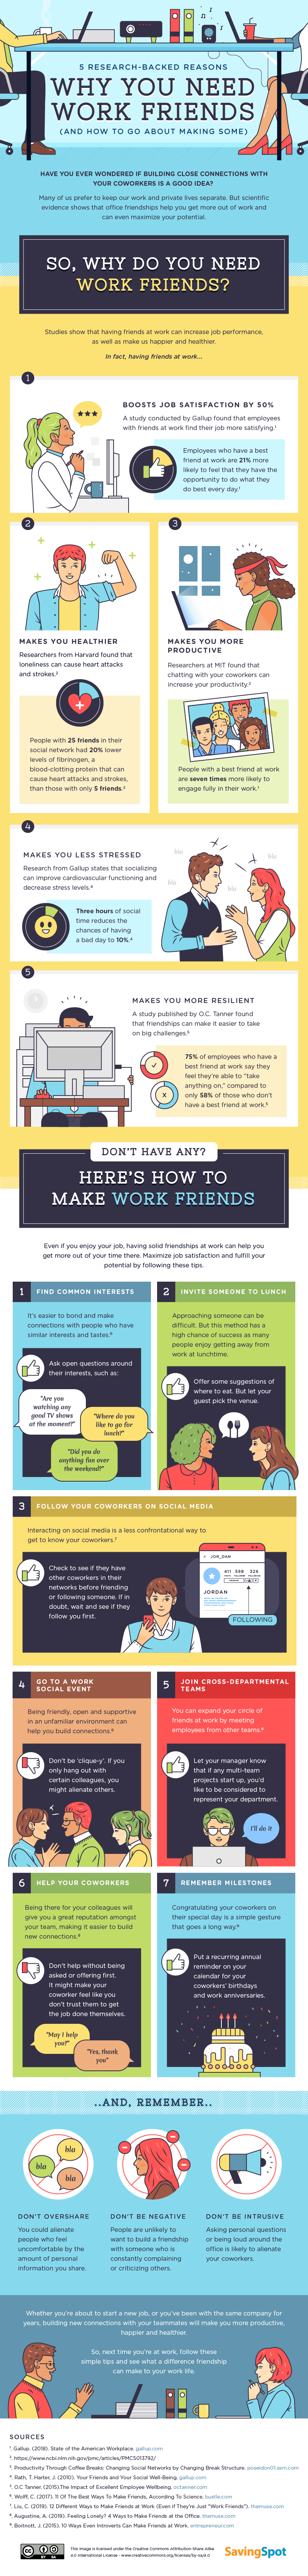 work friends infographic